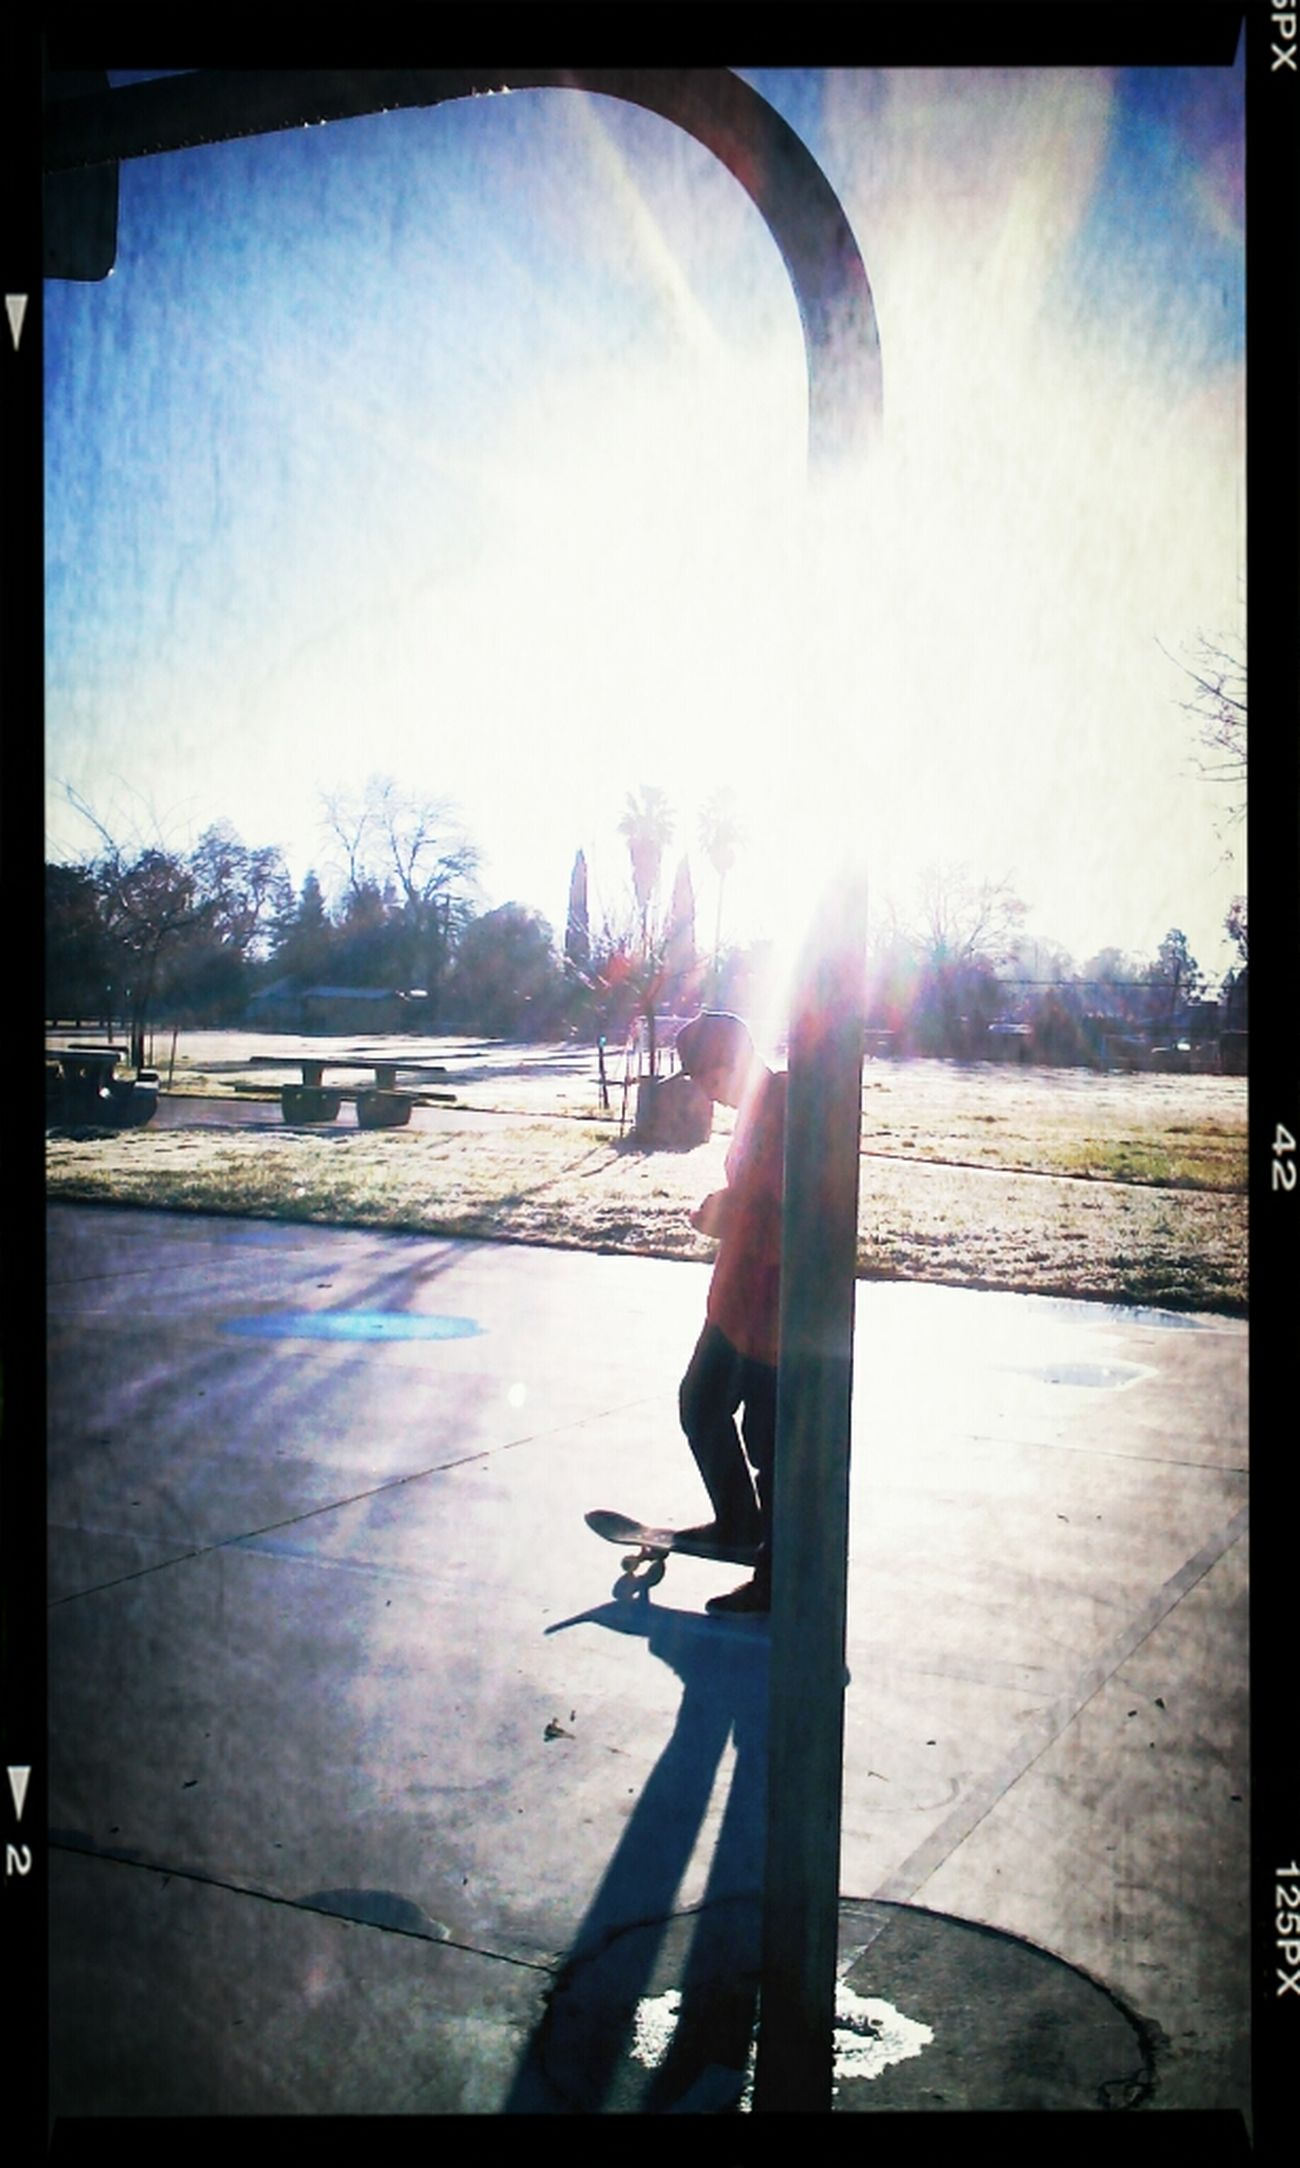 Skateboarding Early Morning Good Morning Early Morning Frost